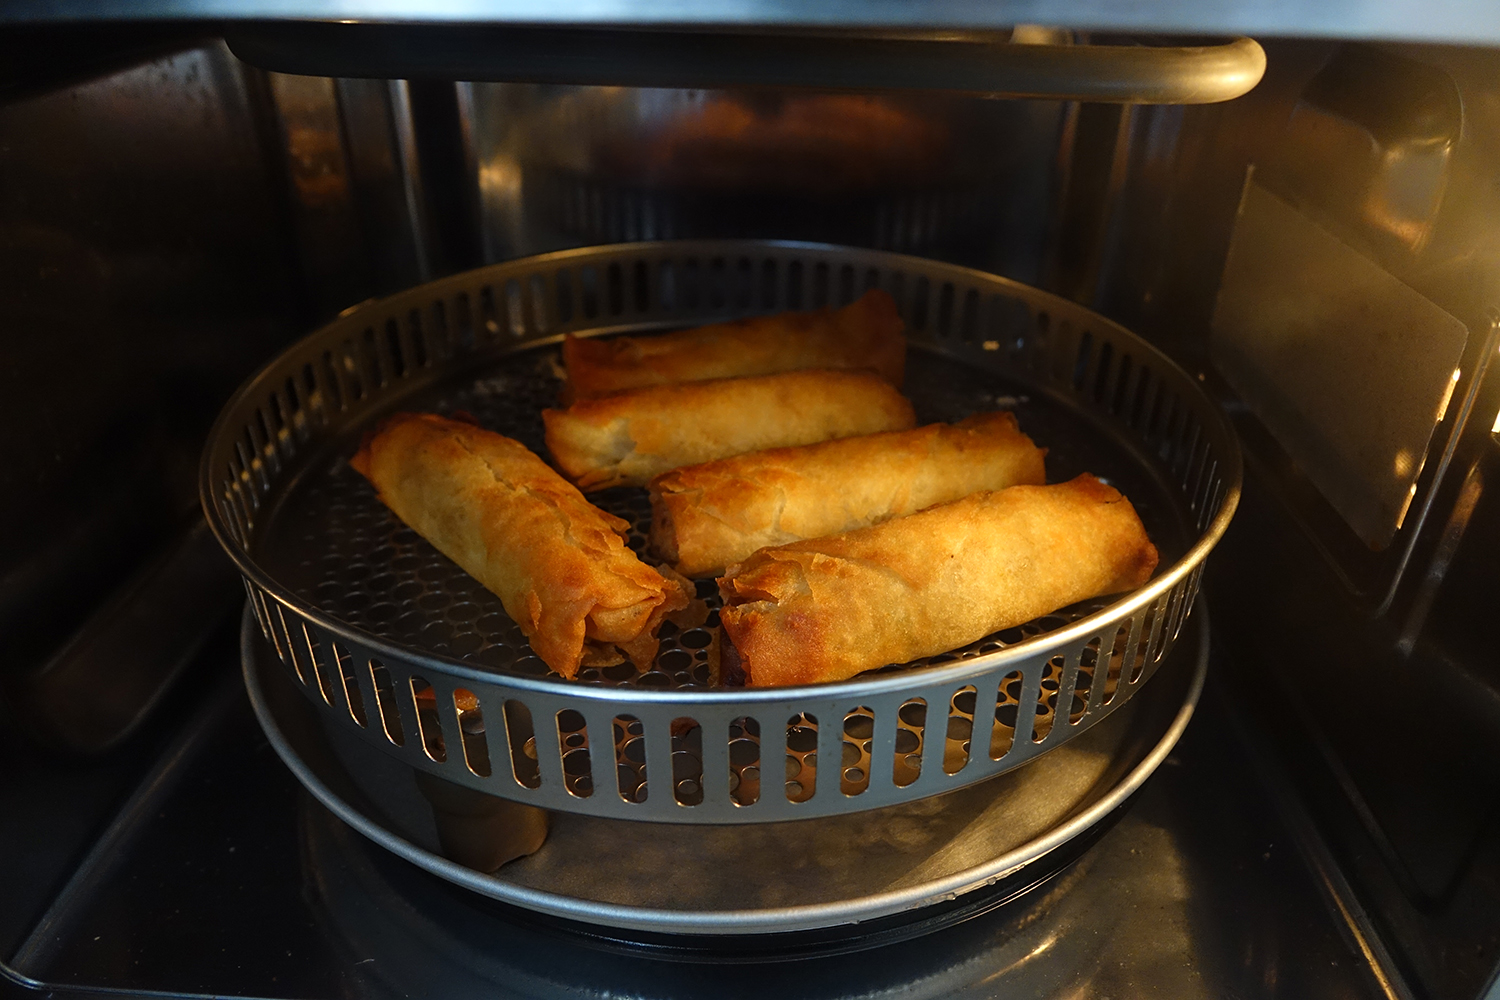 Cuisinart 3-in-1 microwave oven spring rolls